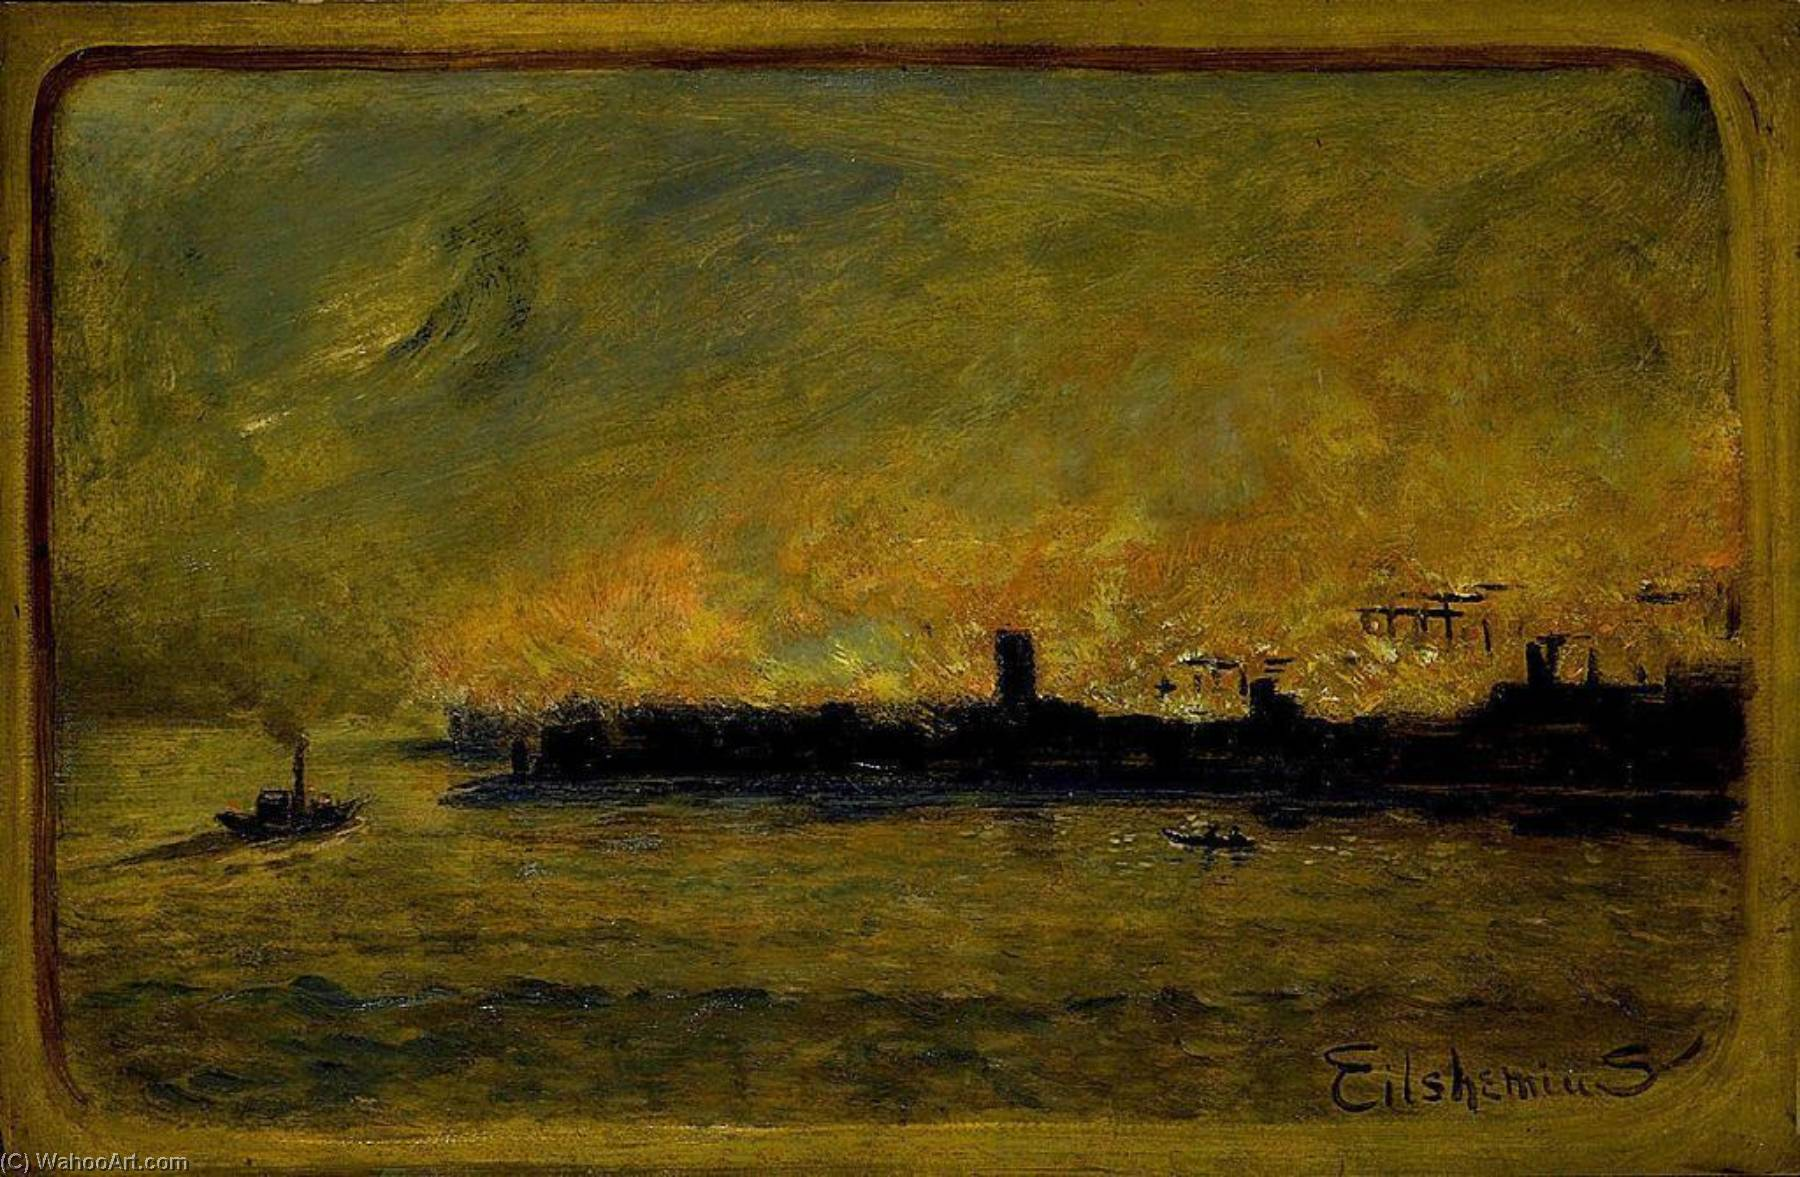 Fire On Bremen Dock, Paper by Louis Michel Eilshemius (1864-1941, United States)